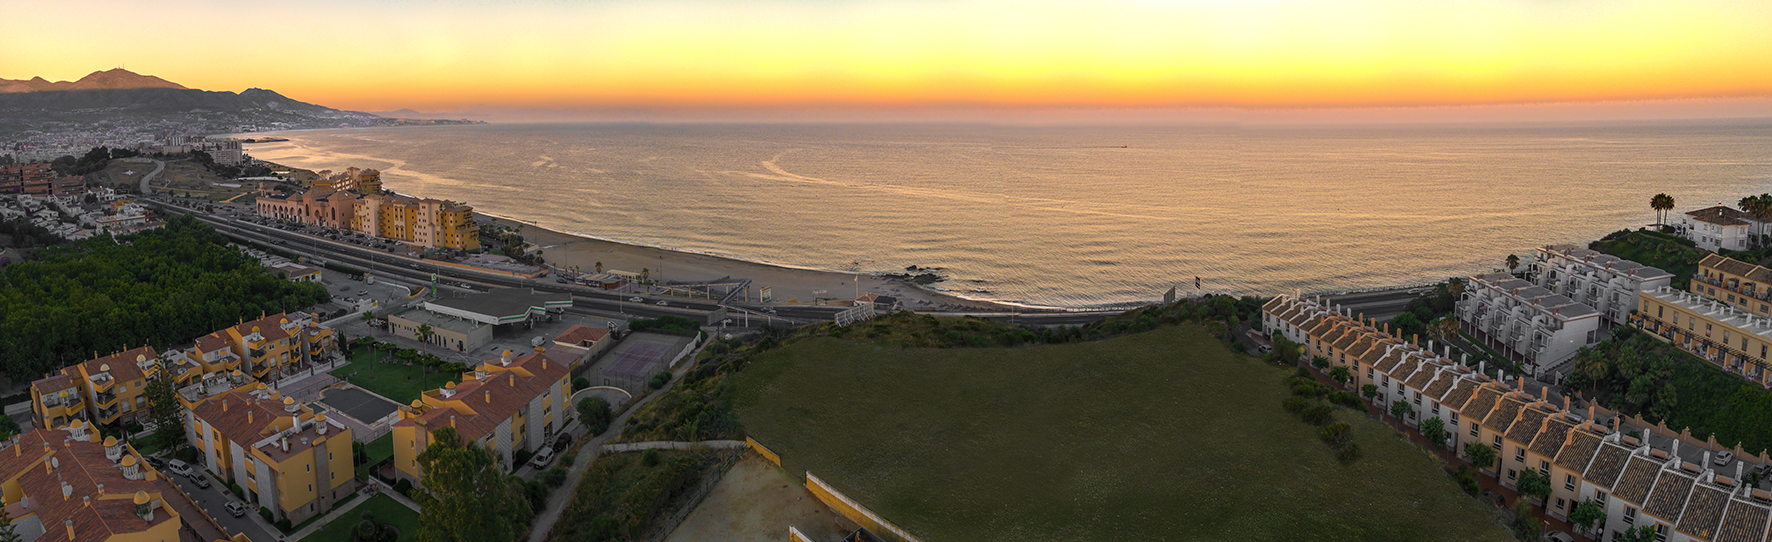 RCS Aria Sunset in Mijas Panorama